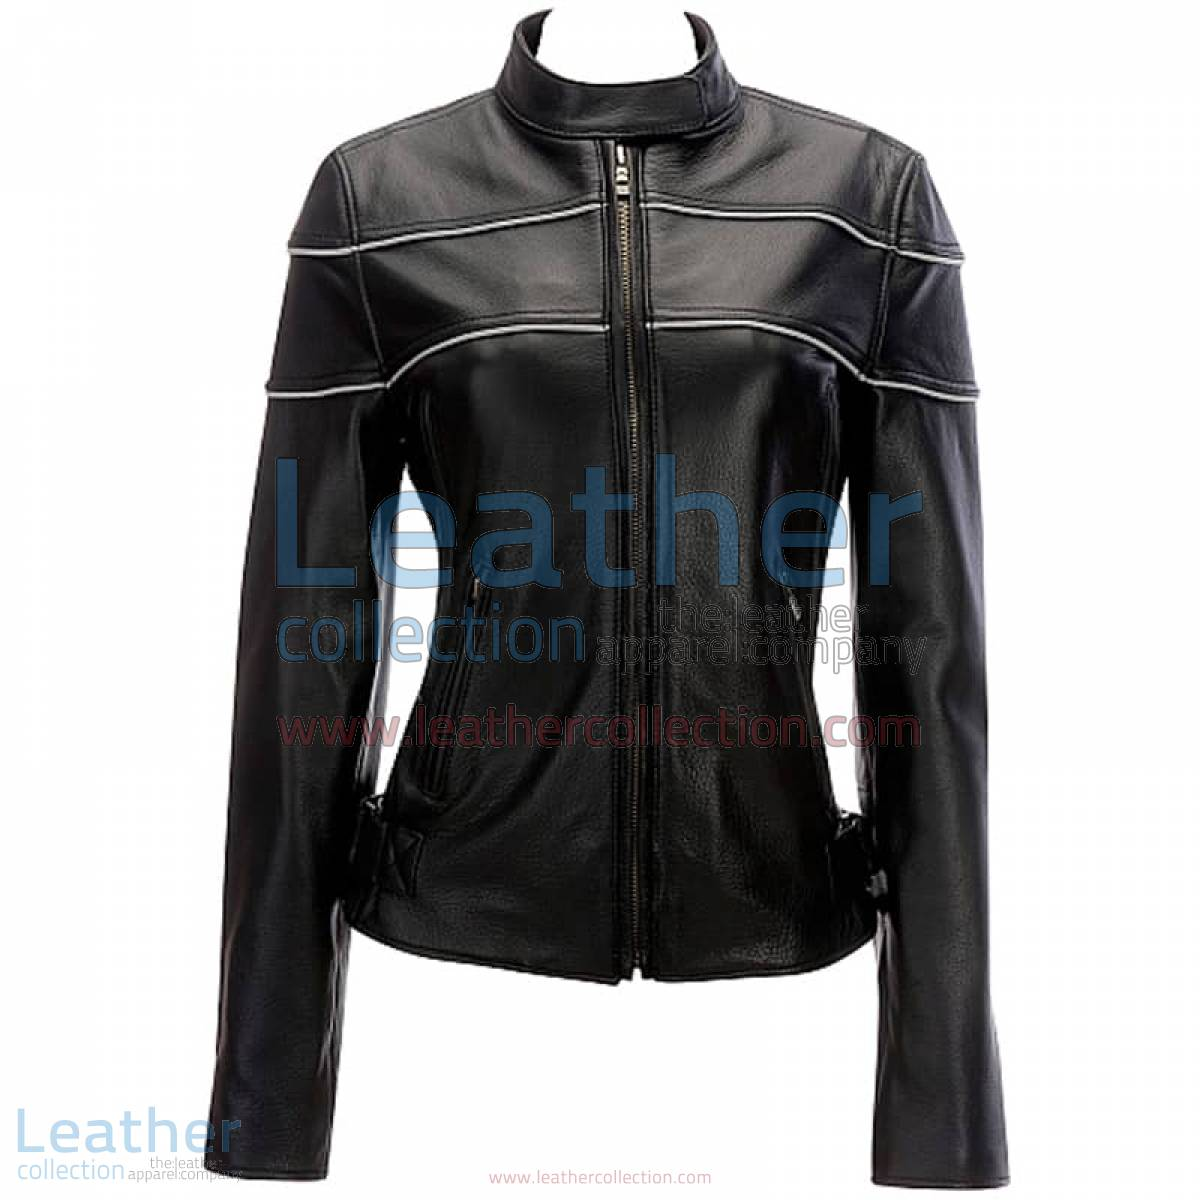 Leather Reflective Piping Jacket Black